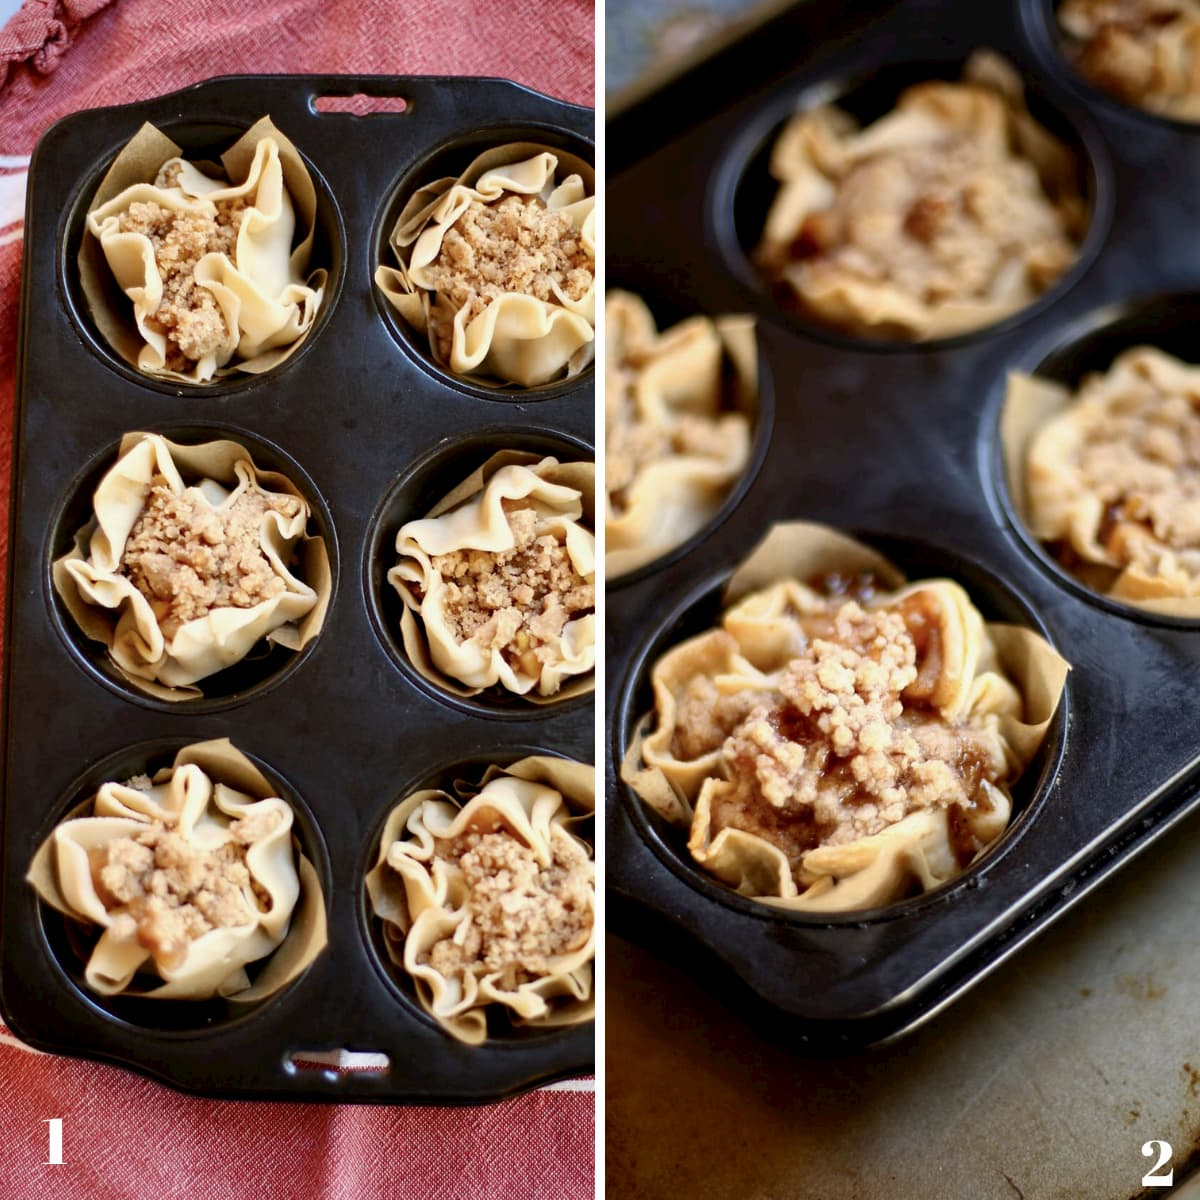 Before and after photos of uncooked and cooked muffin tin pies